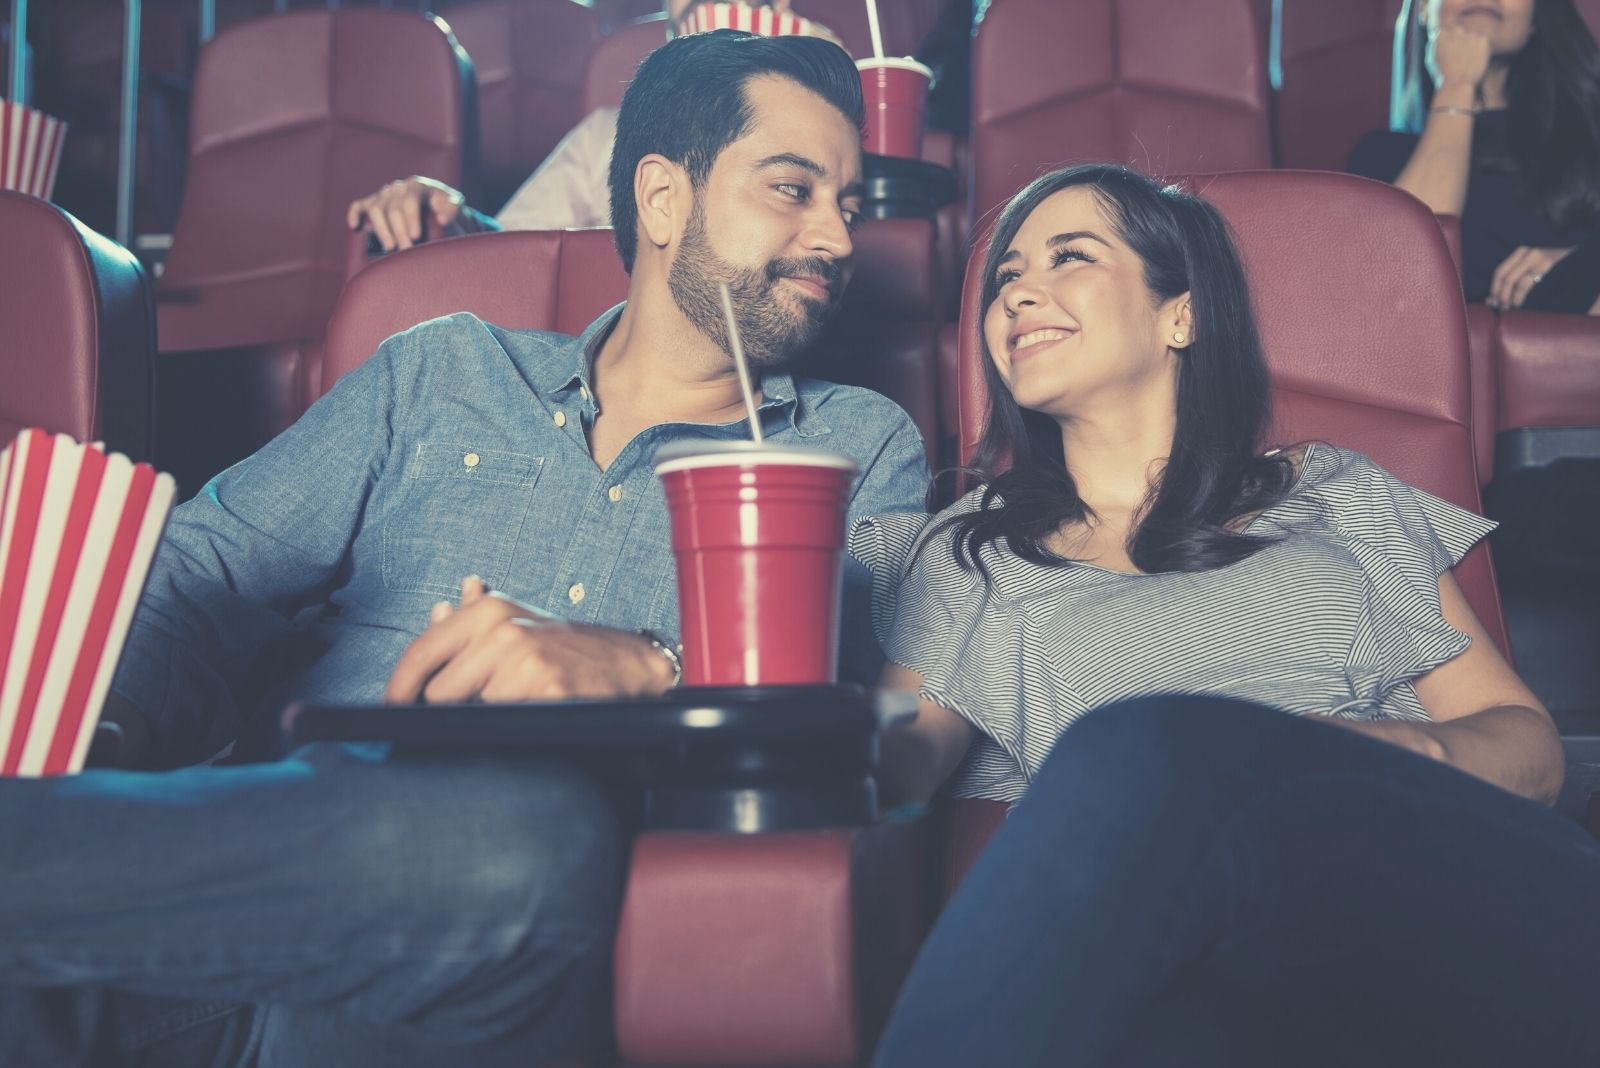 married couple dating watching movies in the moviehouse smiling at each other